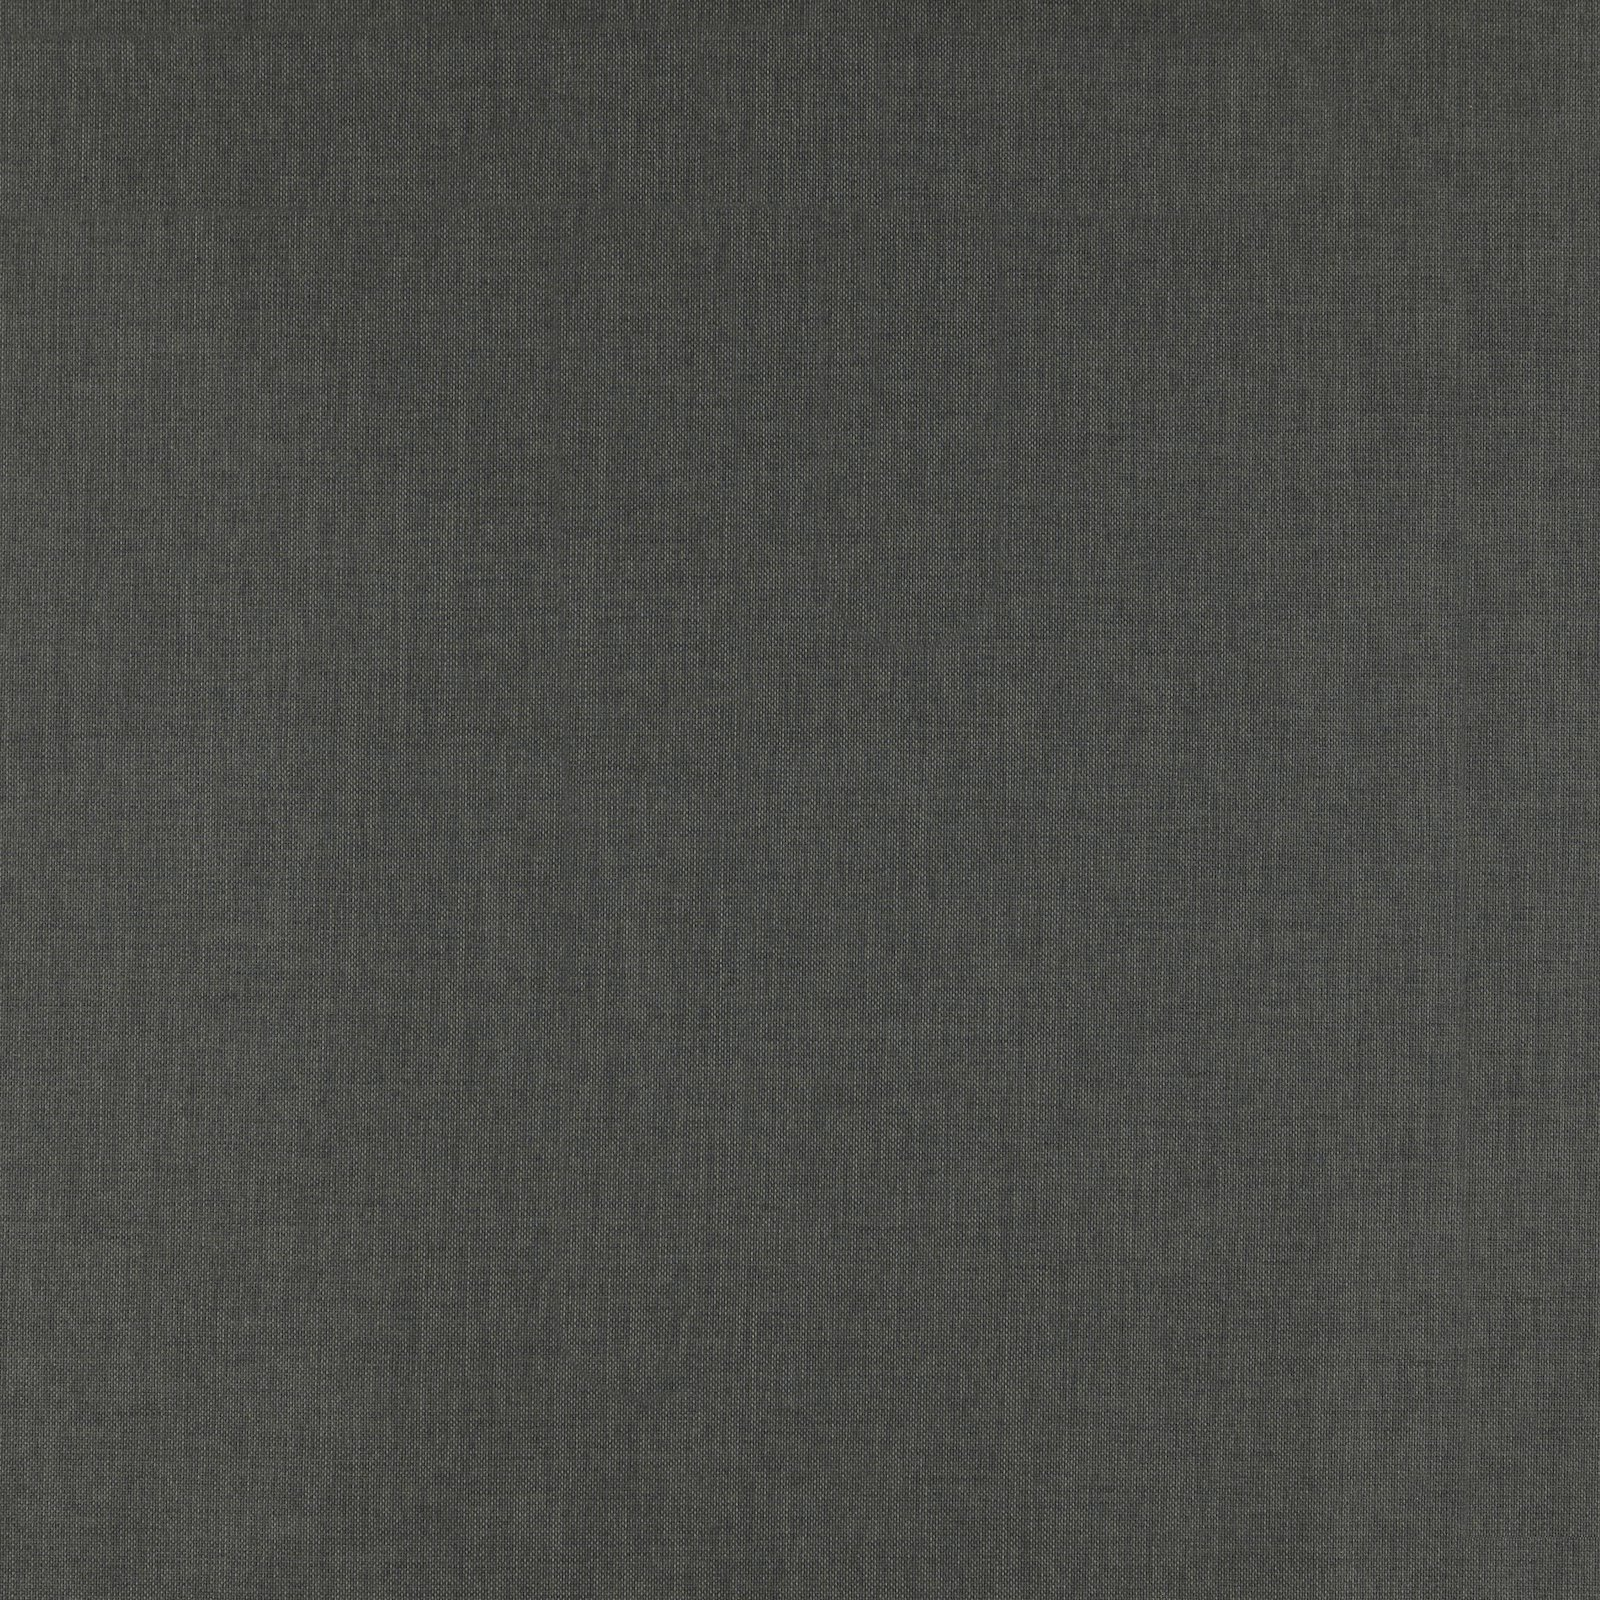 Upholstery fabric medium grey 822183_pack_solid